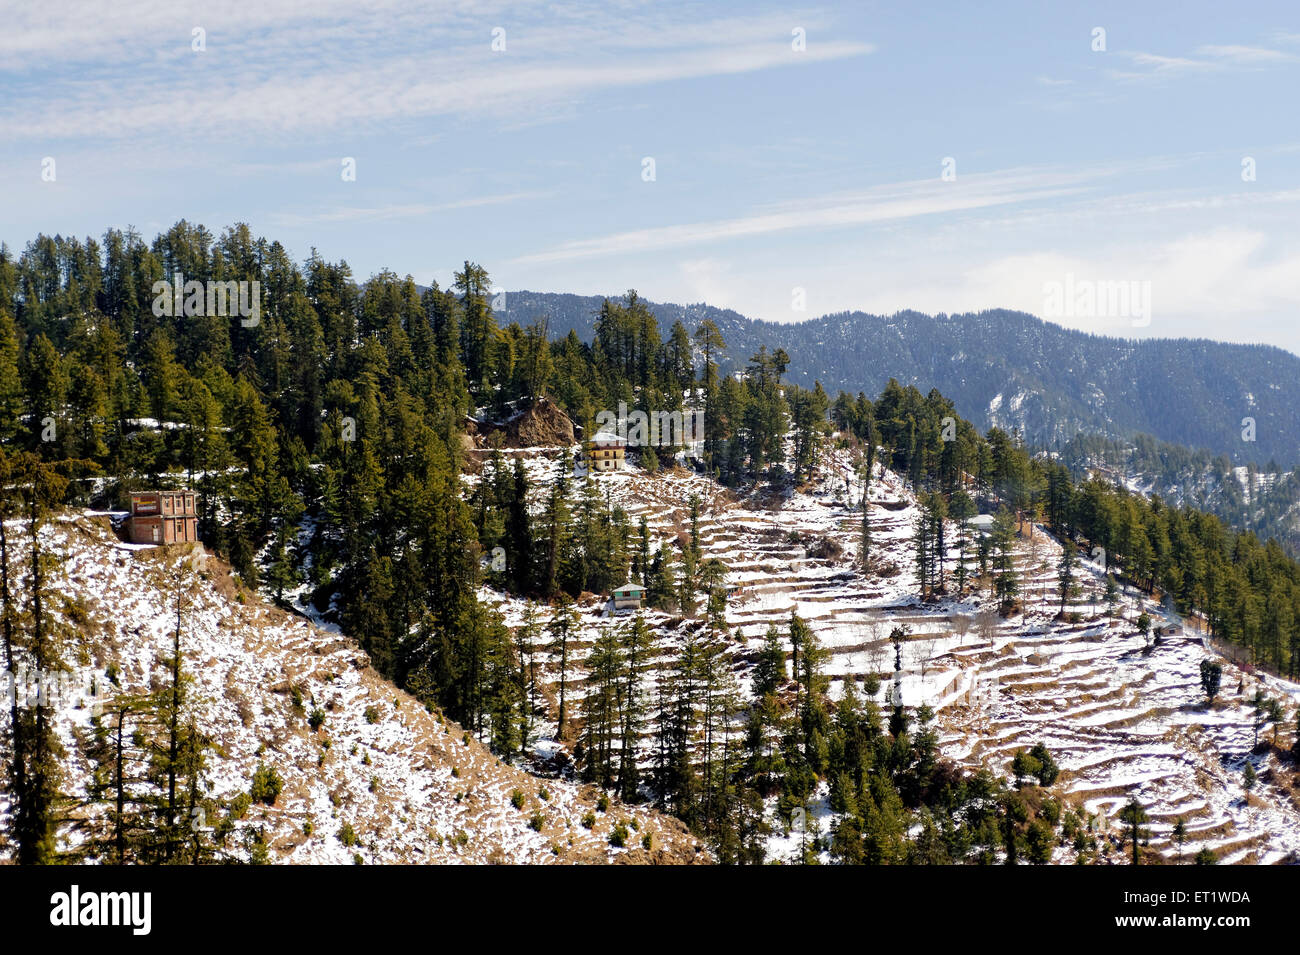 Snow on Mountain in Shimla at Himachal Pradesh India Asia - Stock Image